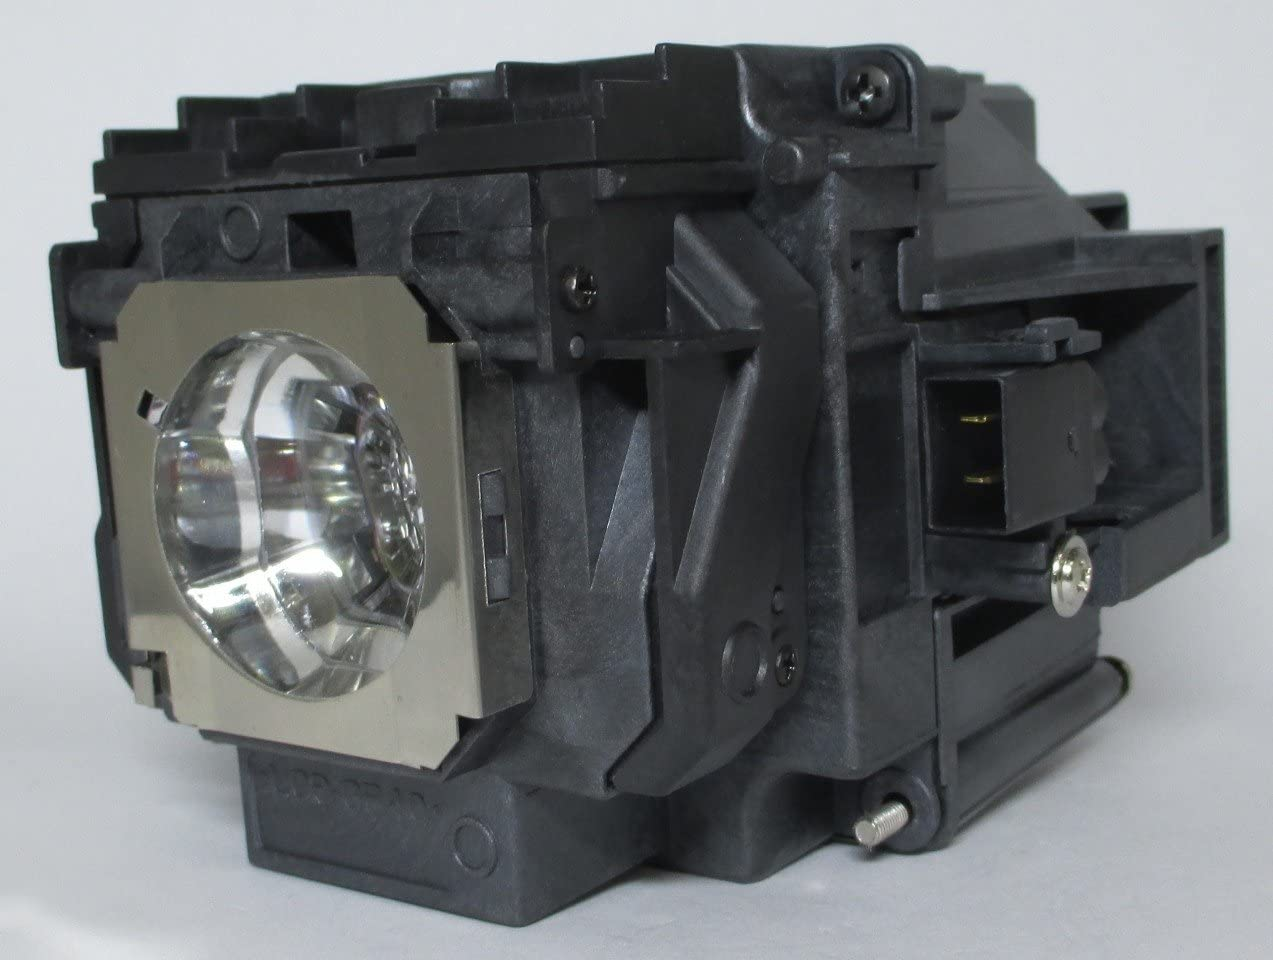 Diamond Lamp for EPSON EB-G6170 Projector with a Matsushita Bulb Inside housing